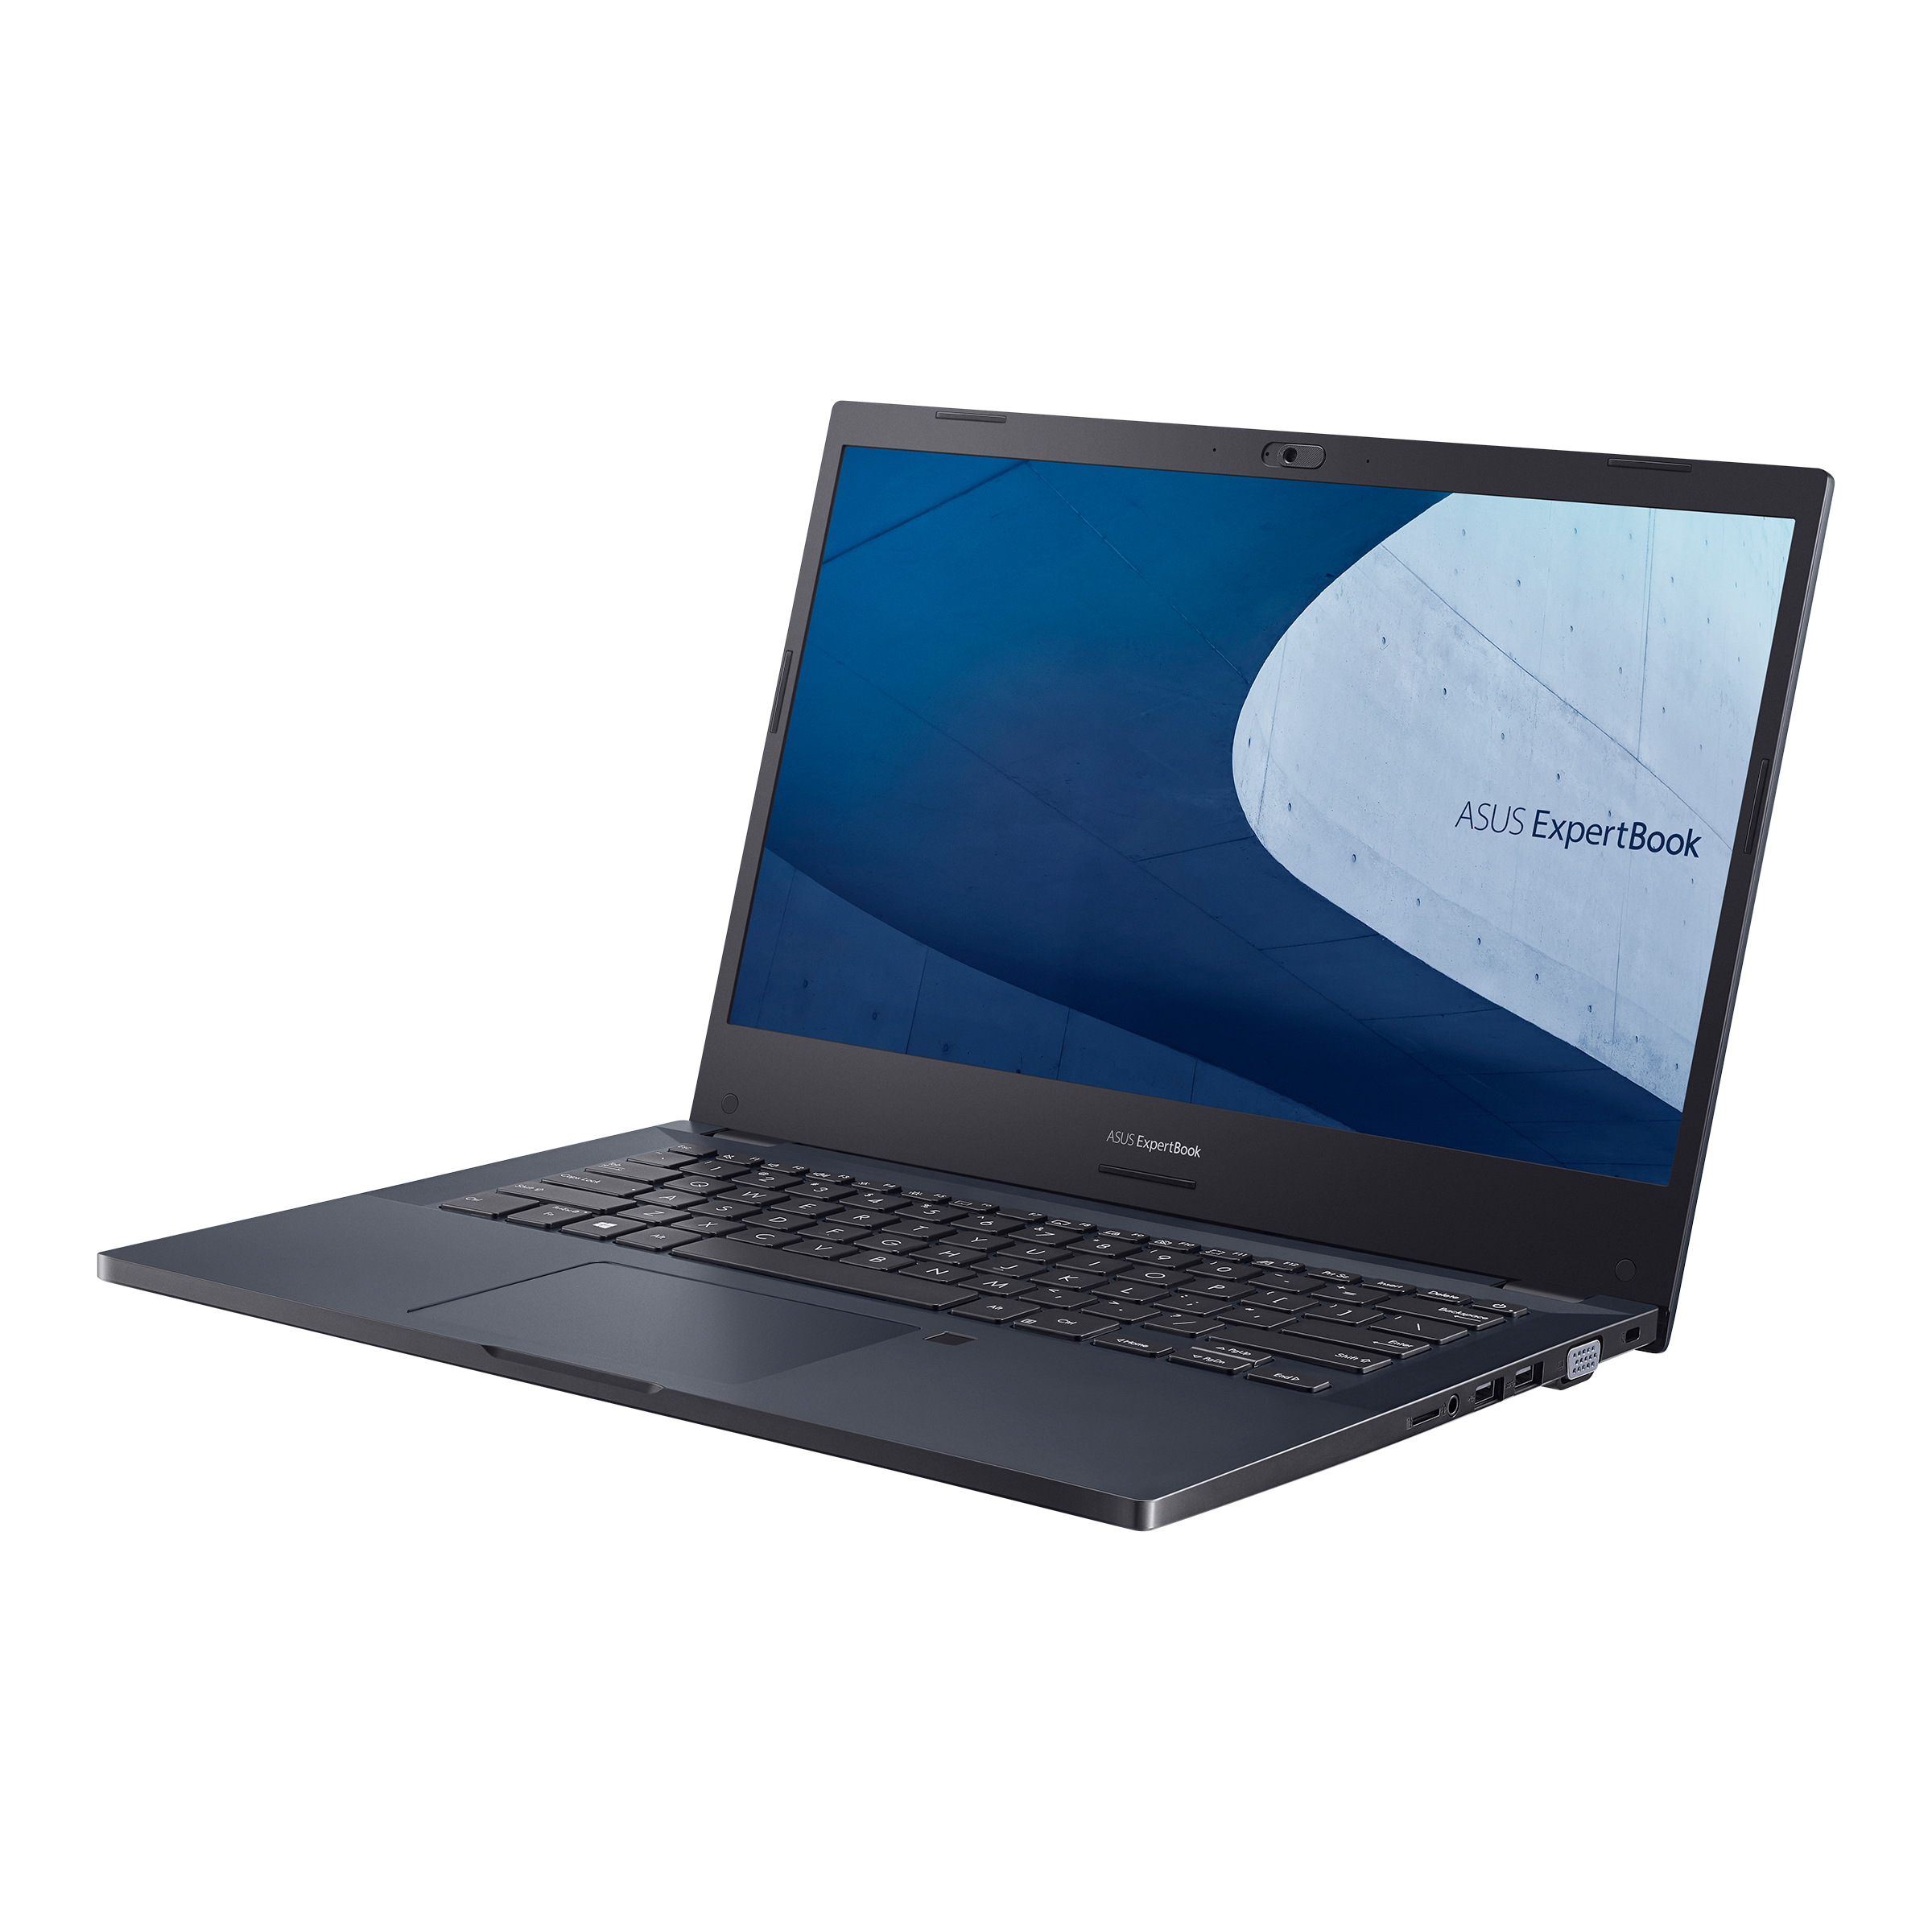 ExpertBook P2 P2451|Laptops For Work|ASUS Global